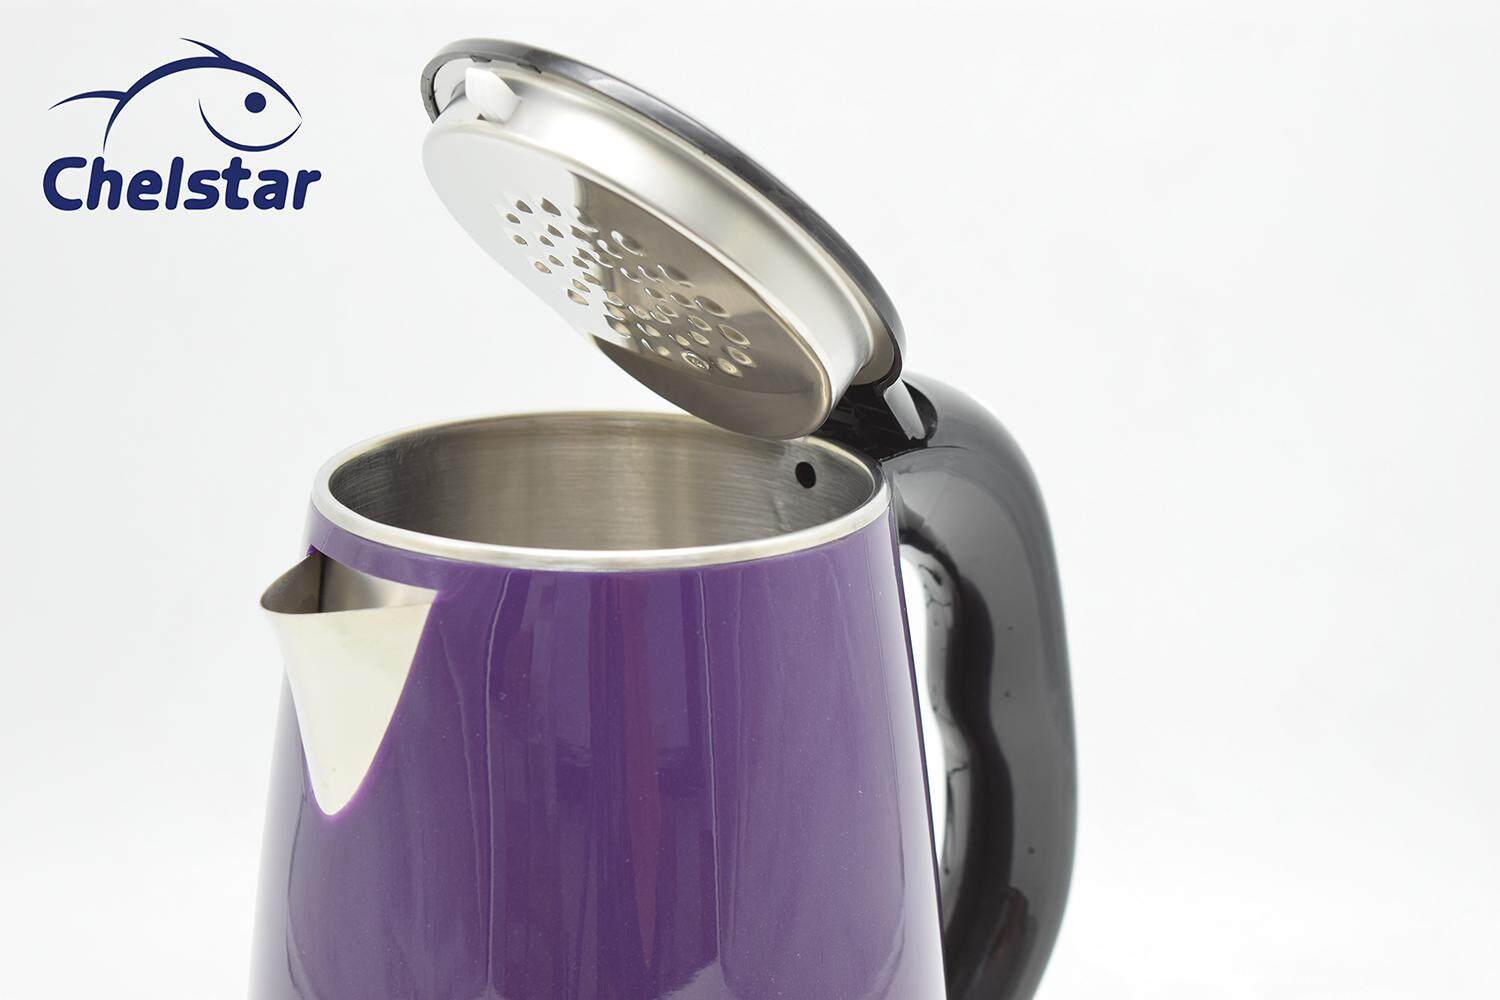 Chelstar Cordless Electric Stainless Steel Jug Kettle (SK-18)